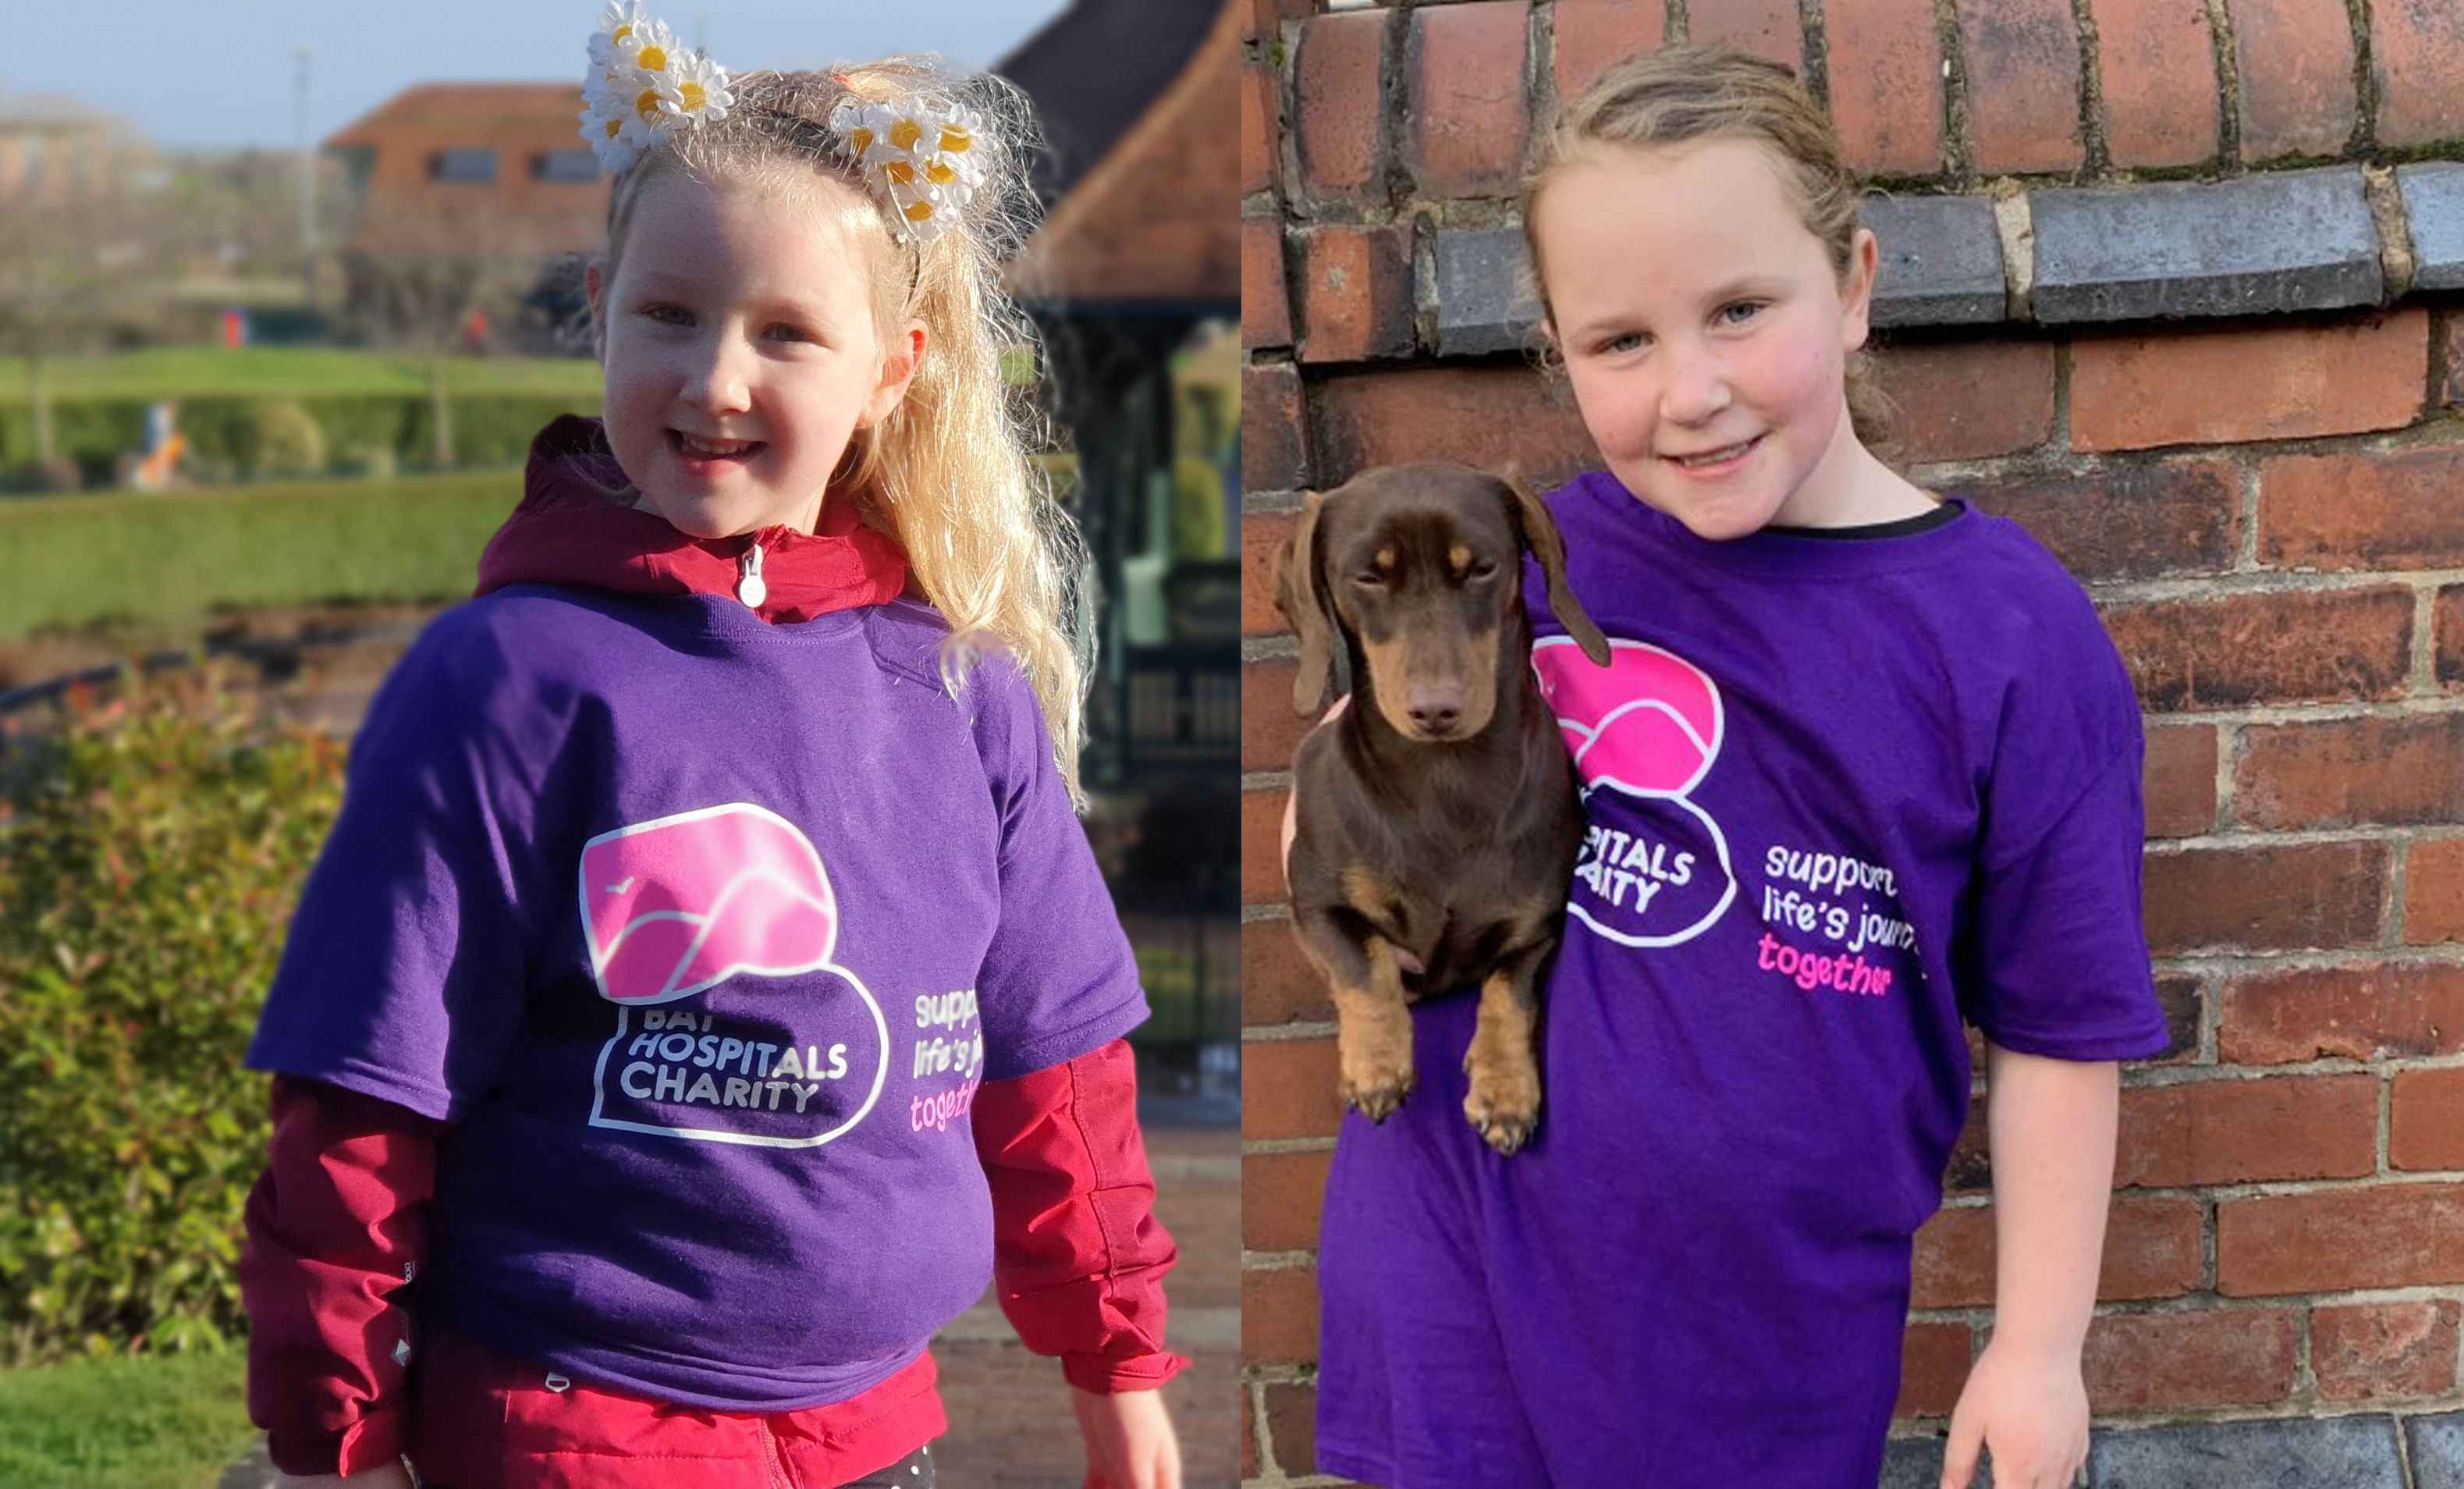 Emme-Rose and Lilli-Mae have raised money for Young Bay Hospitals Charity